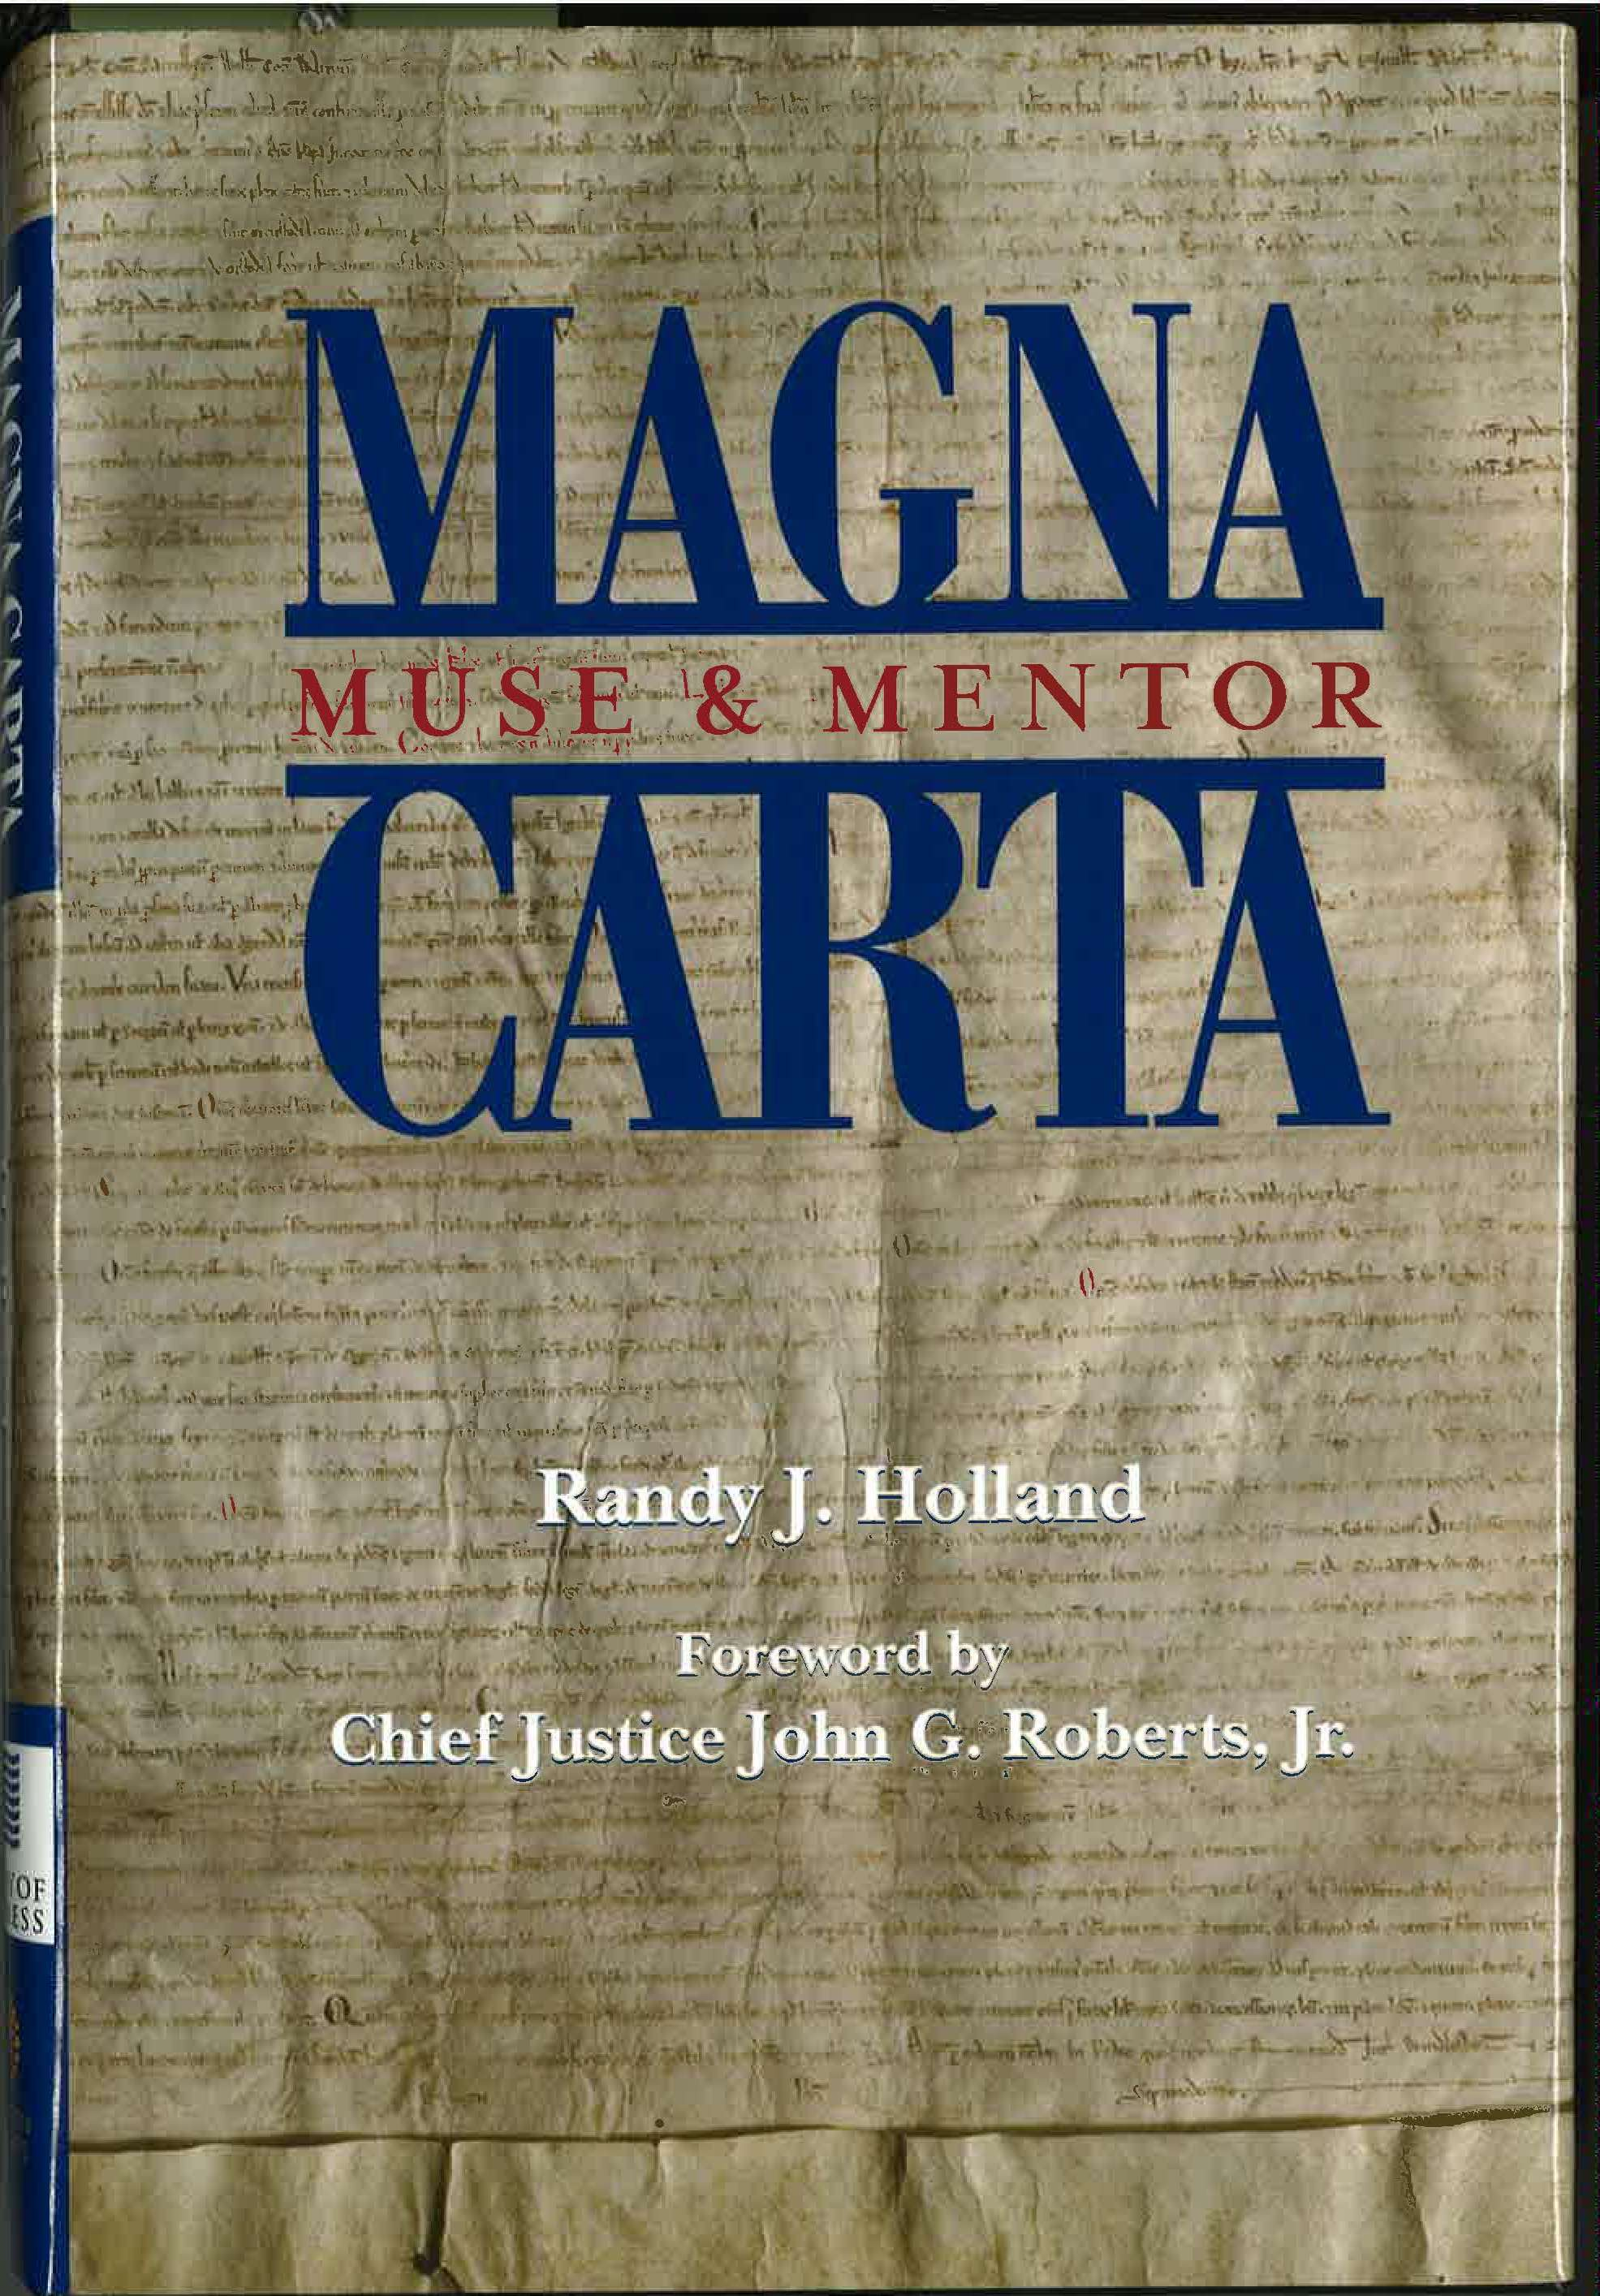 Magna Carta - Muse & Mentor by Randy Holland. HARDCOVER. Prices reflect the cost of the book PLUS S&H fee of $5.00.